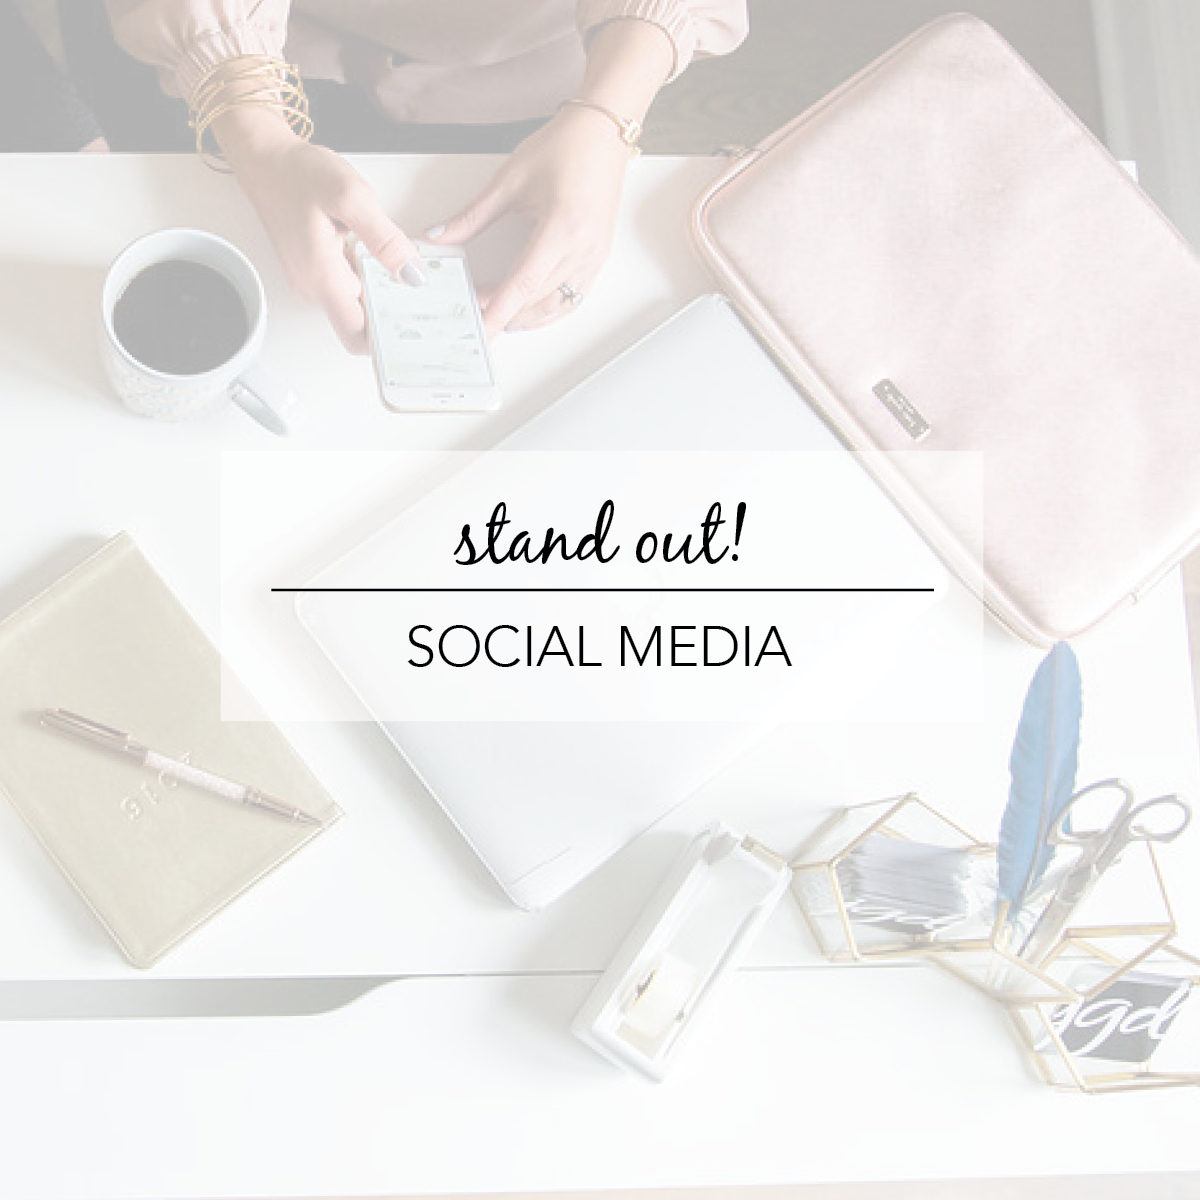 Stand out on social media with this free Social Media Audit checklist by jgdigital.jpg